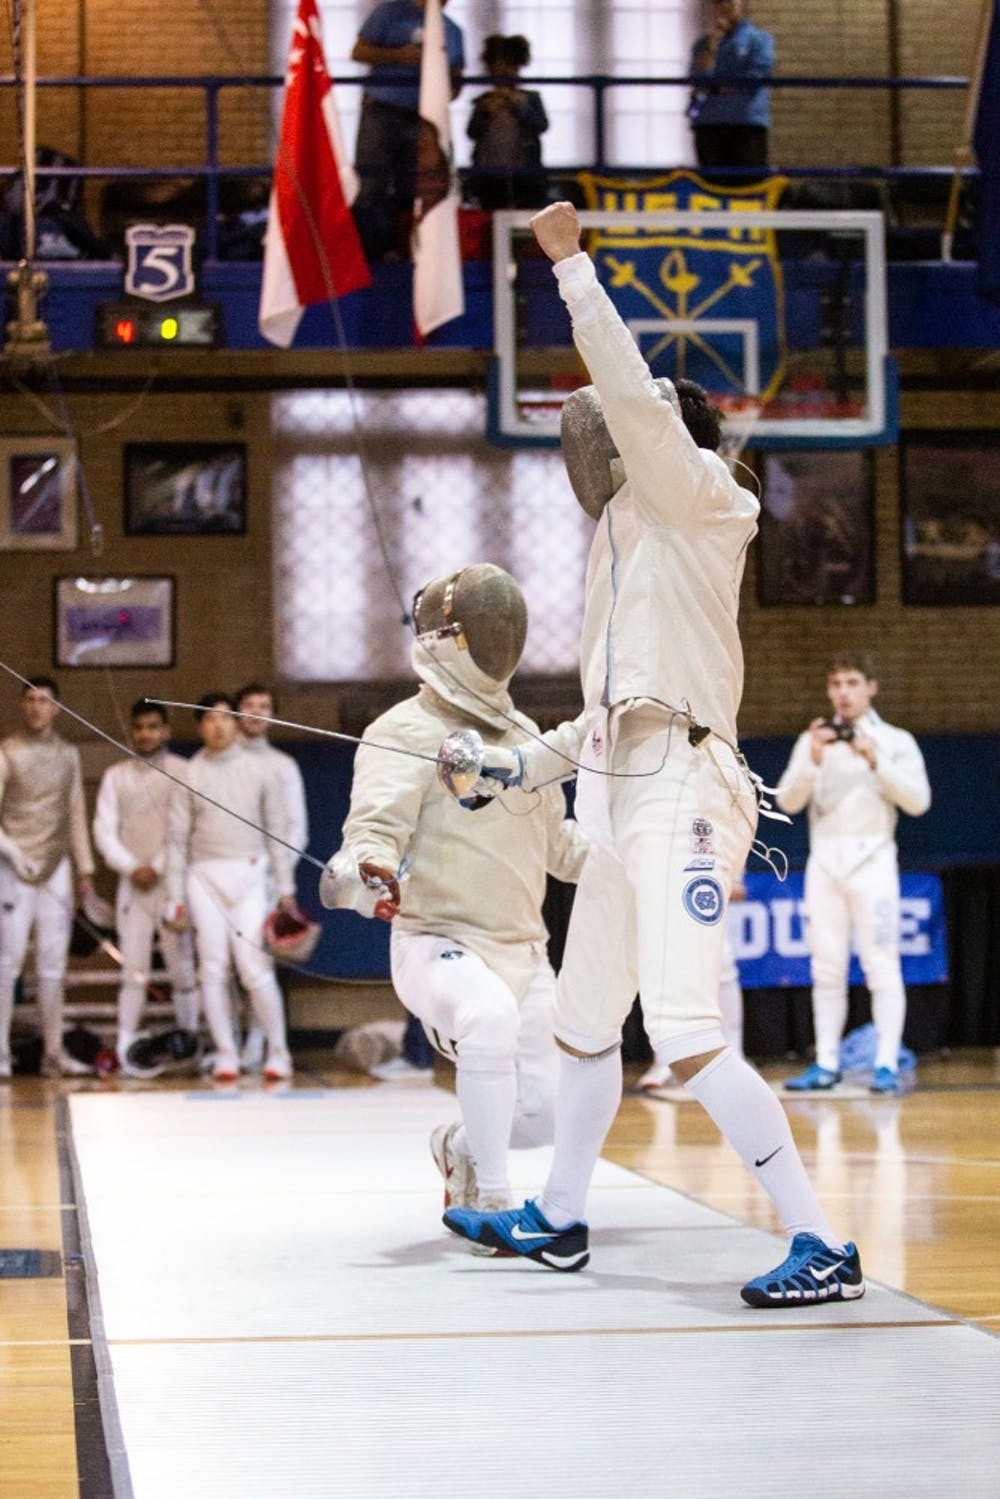 North Carolina fencing finishes 20th at NCAA Championships with three competitors